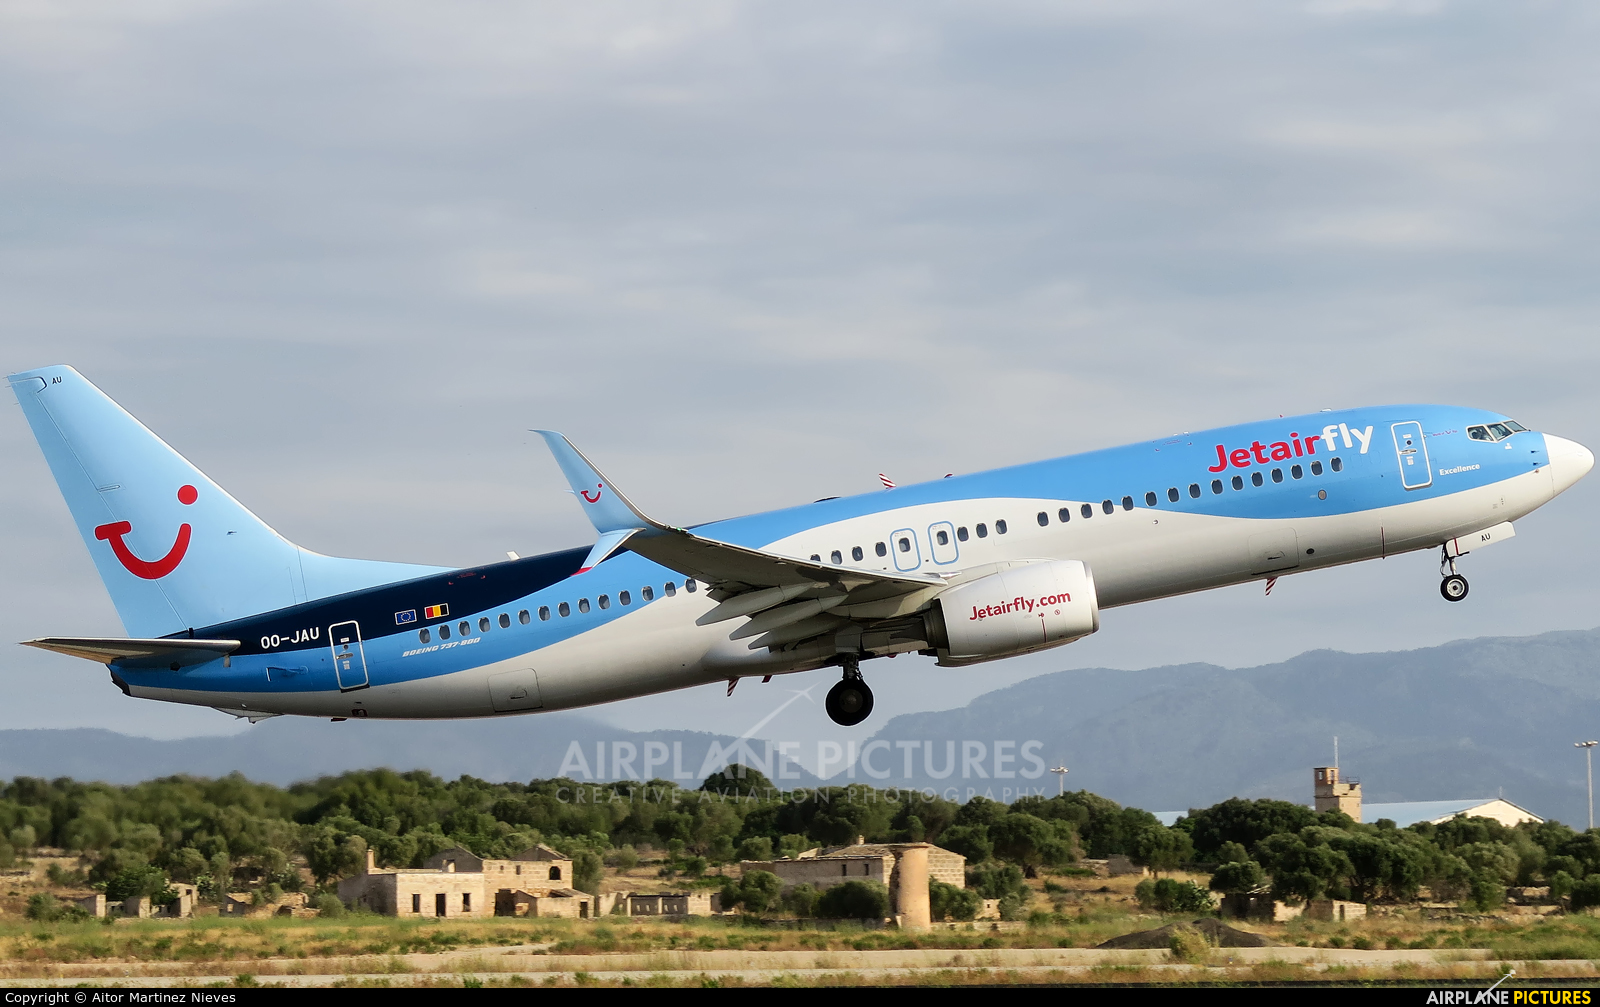 Jetairfly (TUI Airlines Belgium) OO-JAU aircraft at Palma de Mallorca